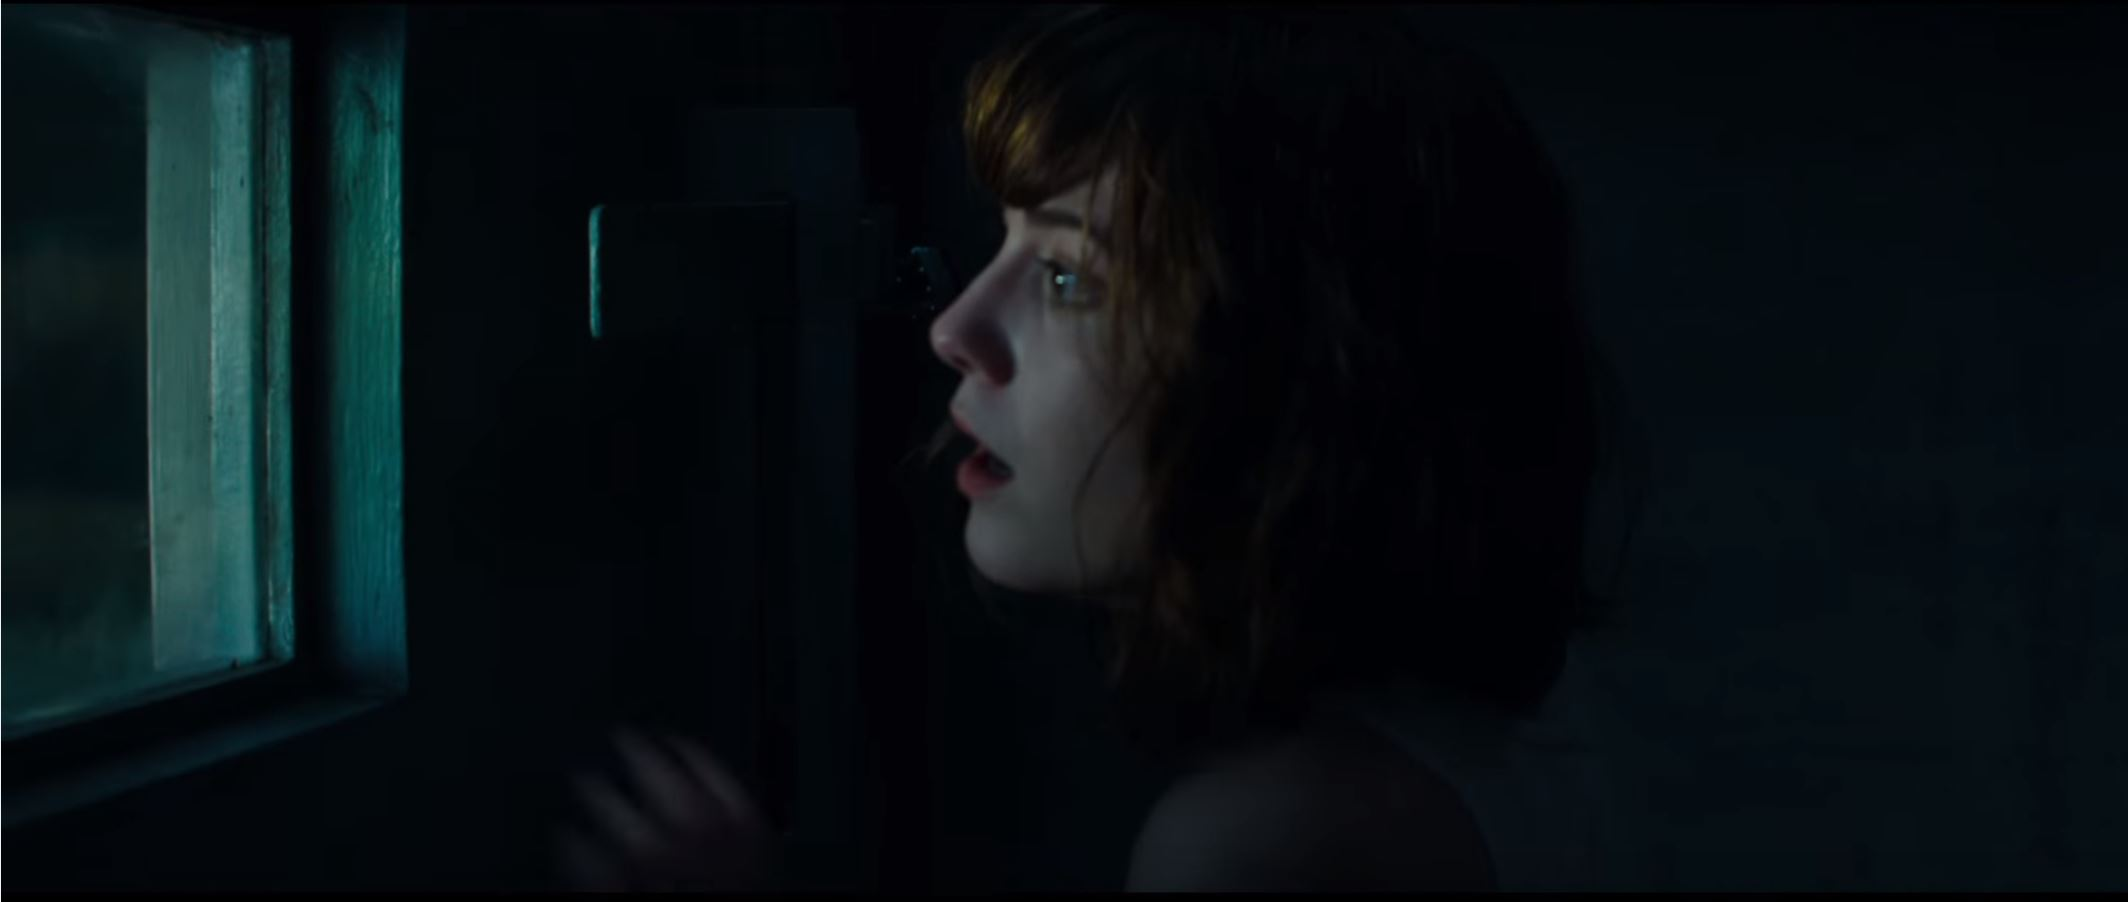 Watch the movie trailer for 10 Cloverfield Lane, a new film from J.J. Abrams